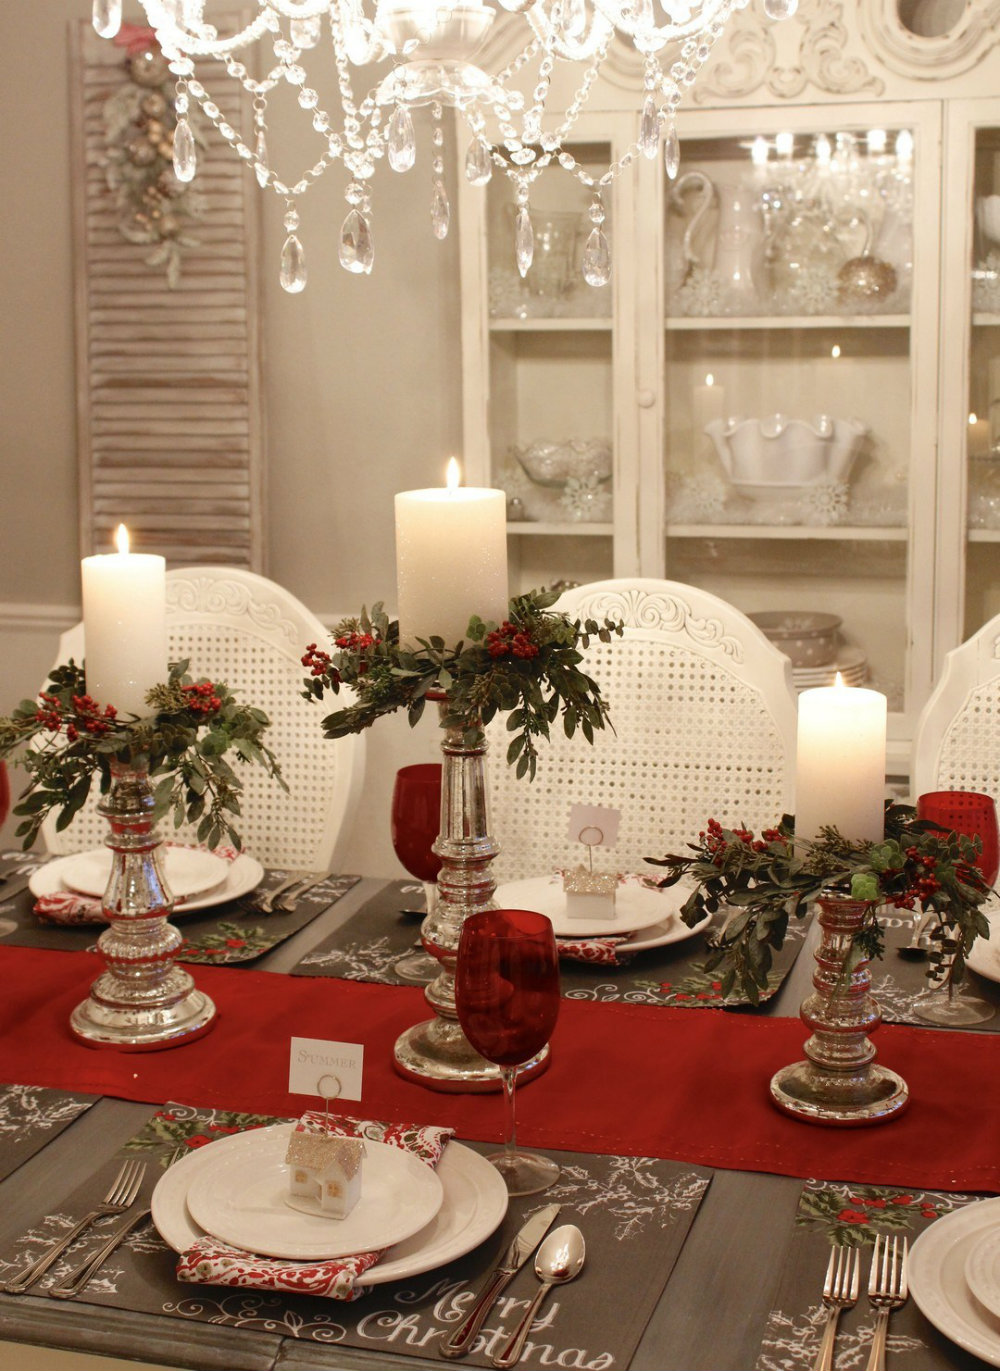 5 Classic And Timeless Christmas Decor Ideas